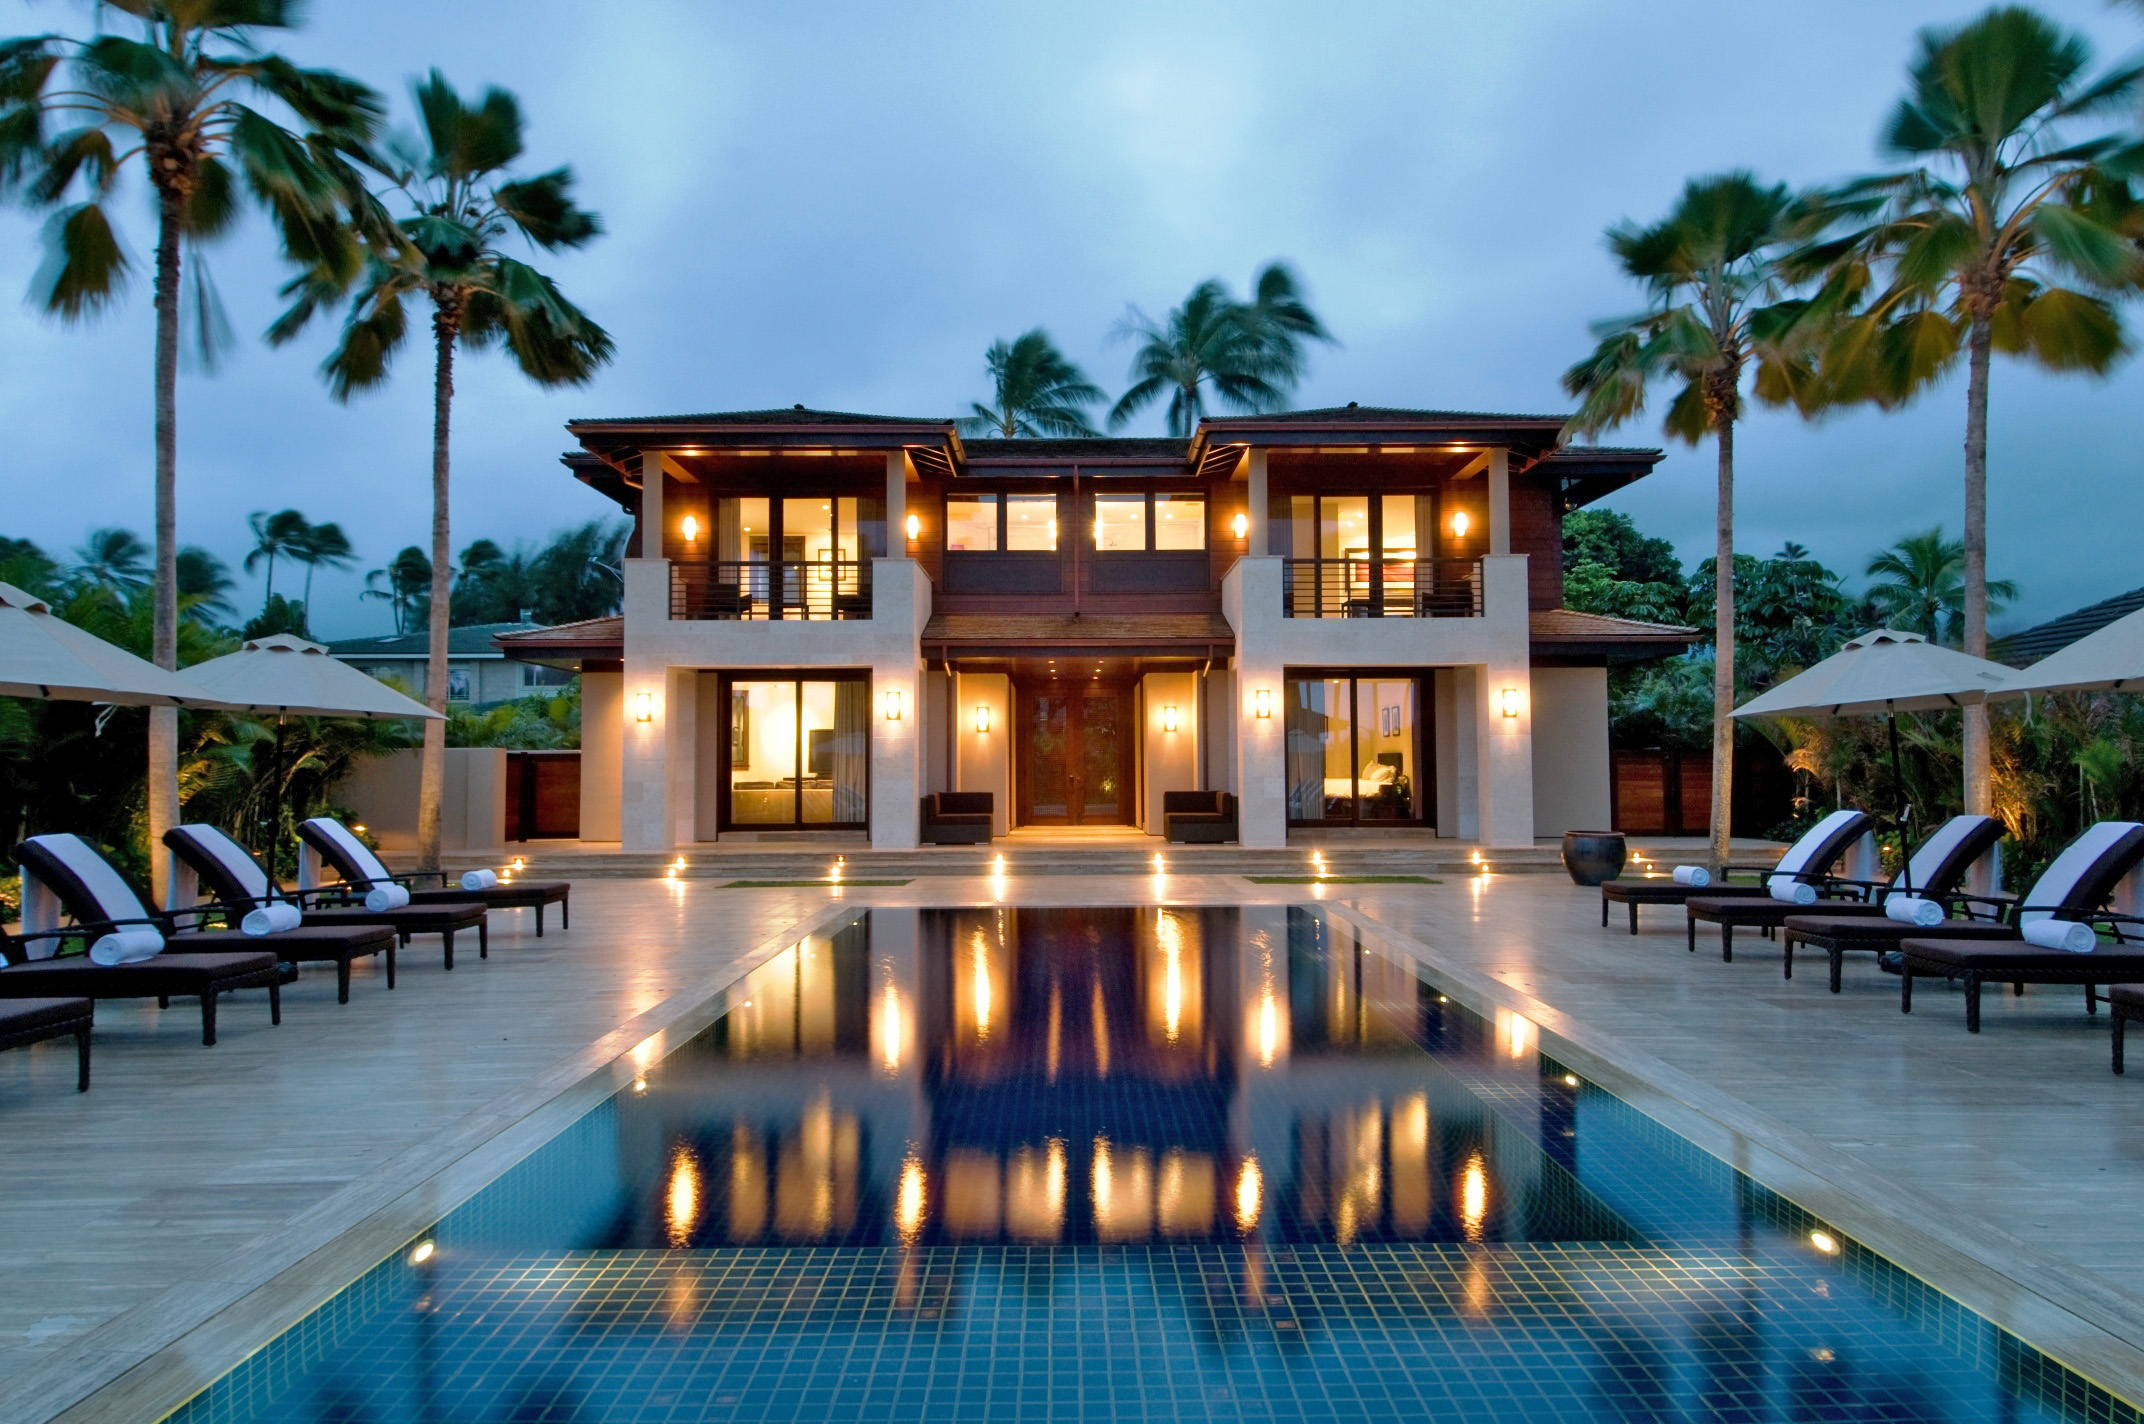 The benefits of Staying in a Vacation Villa